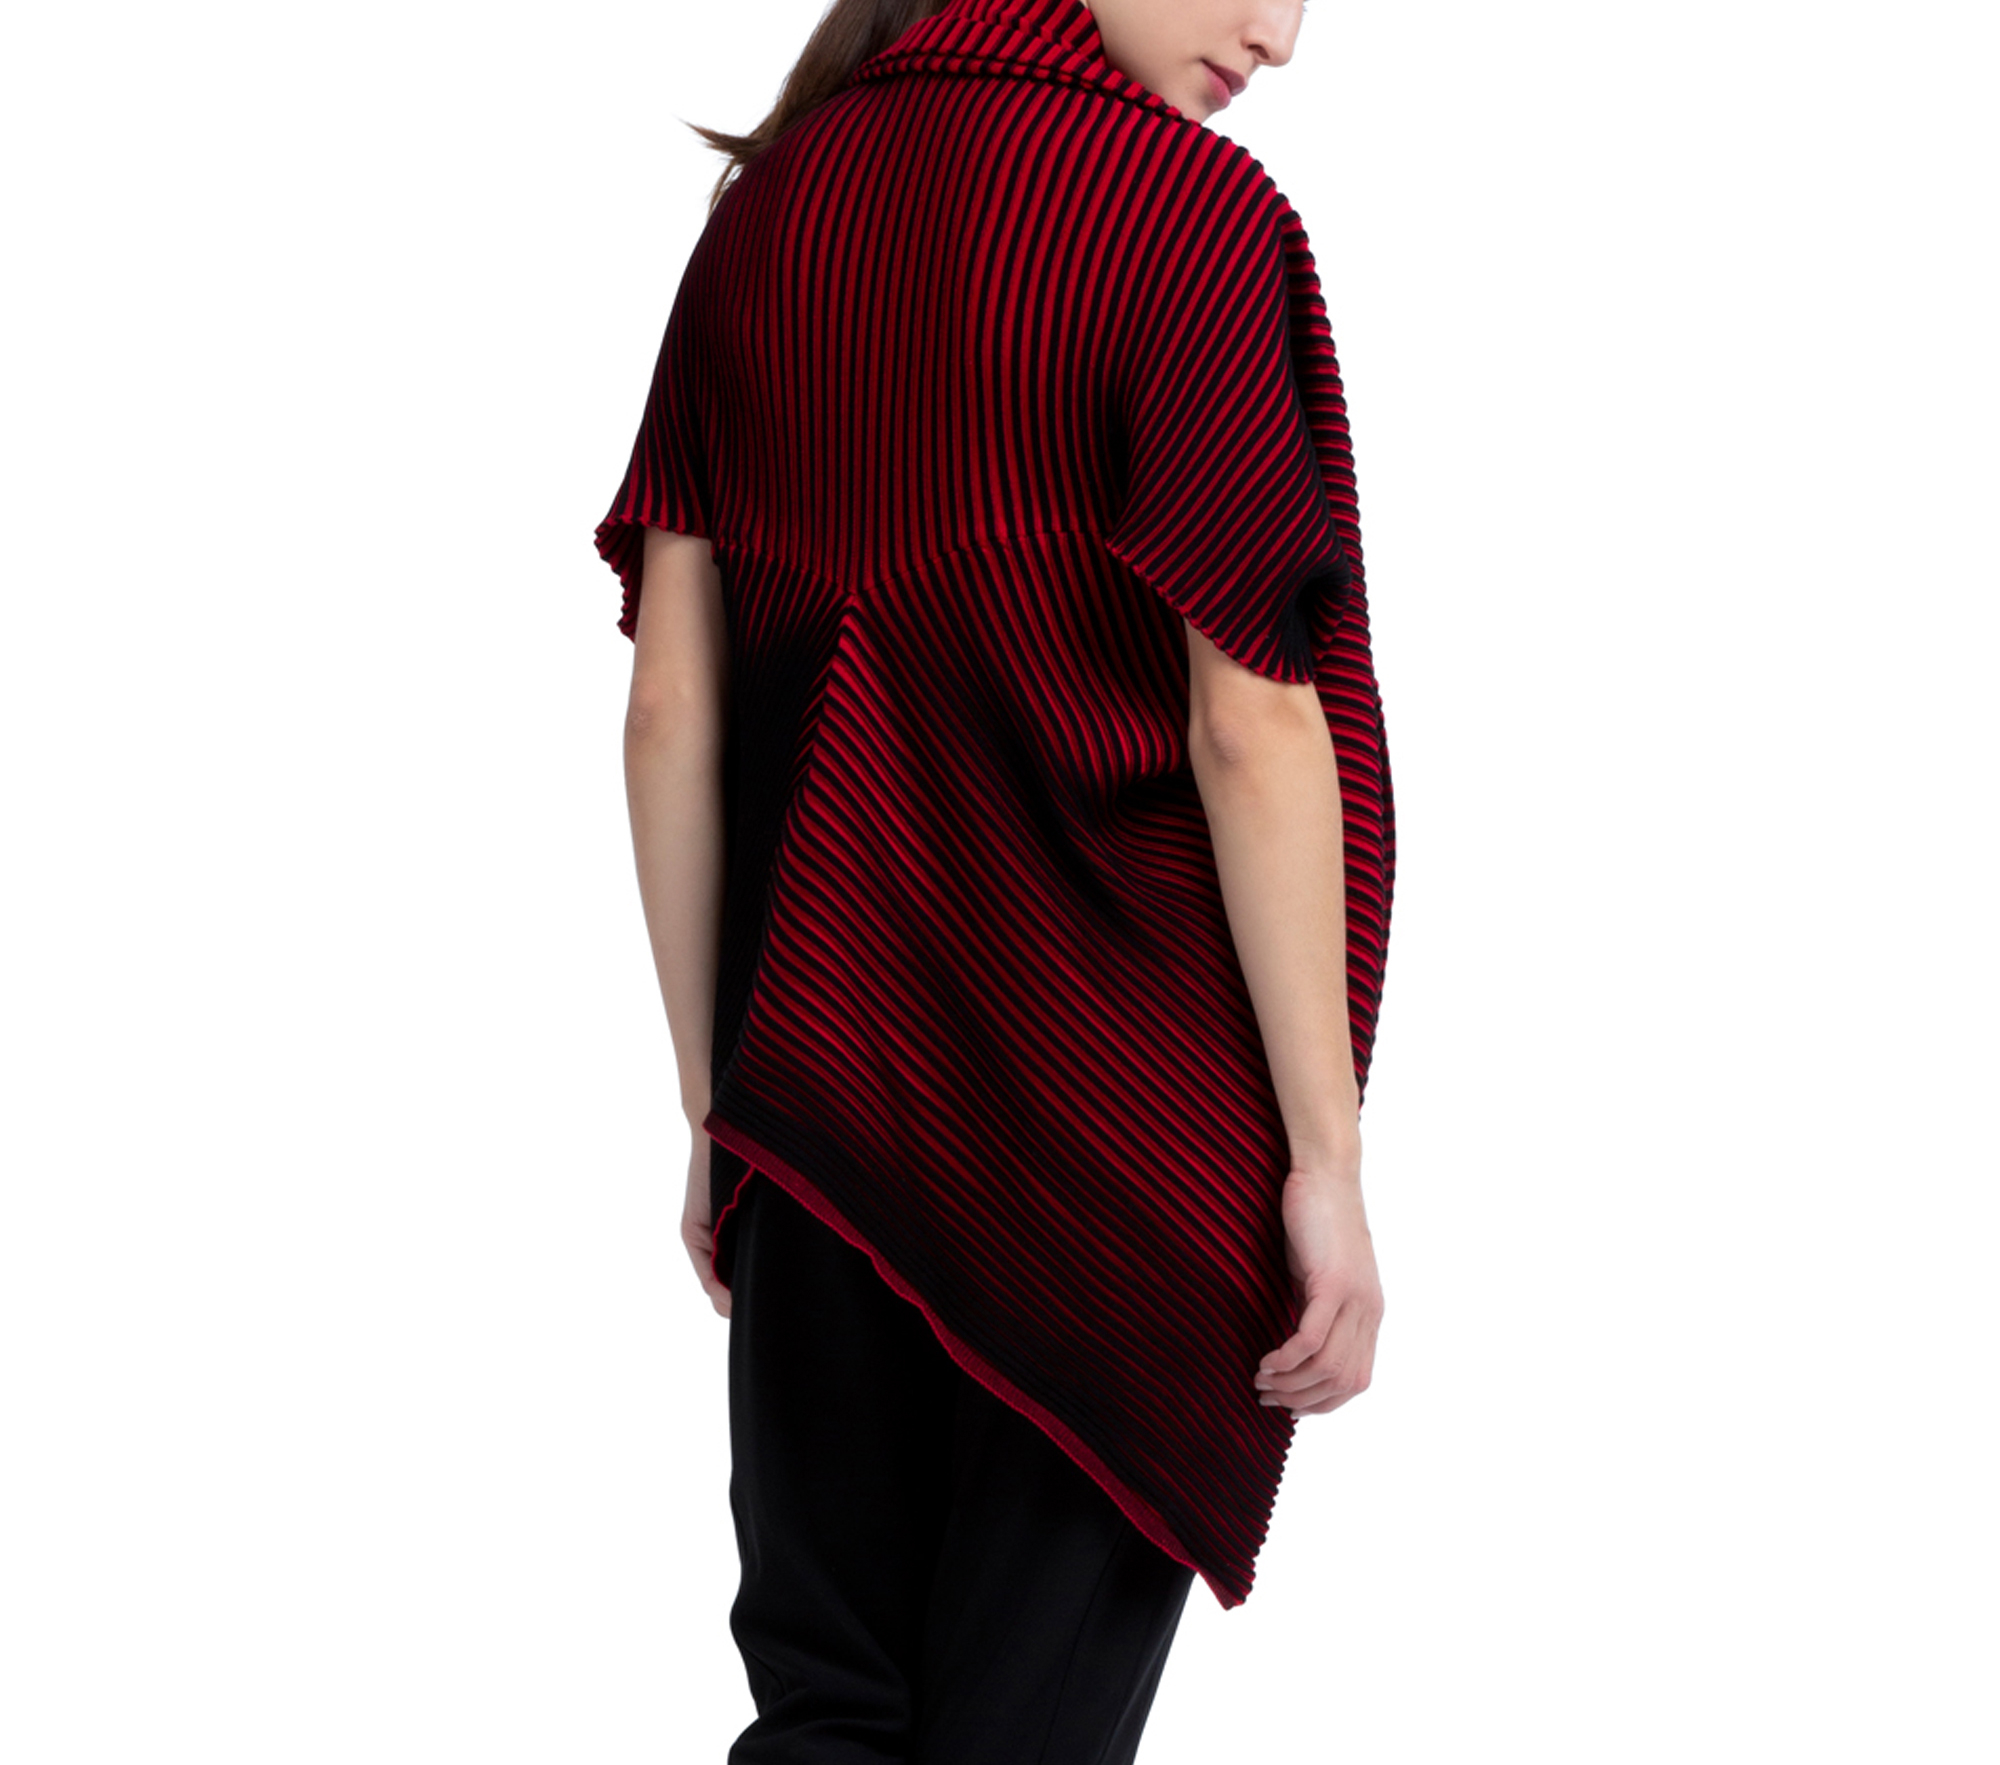 Bicolor rib knit wrap-over